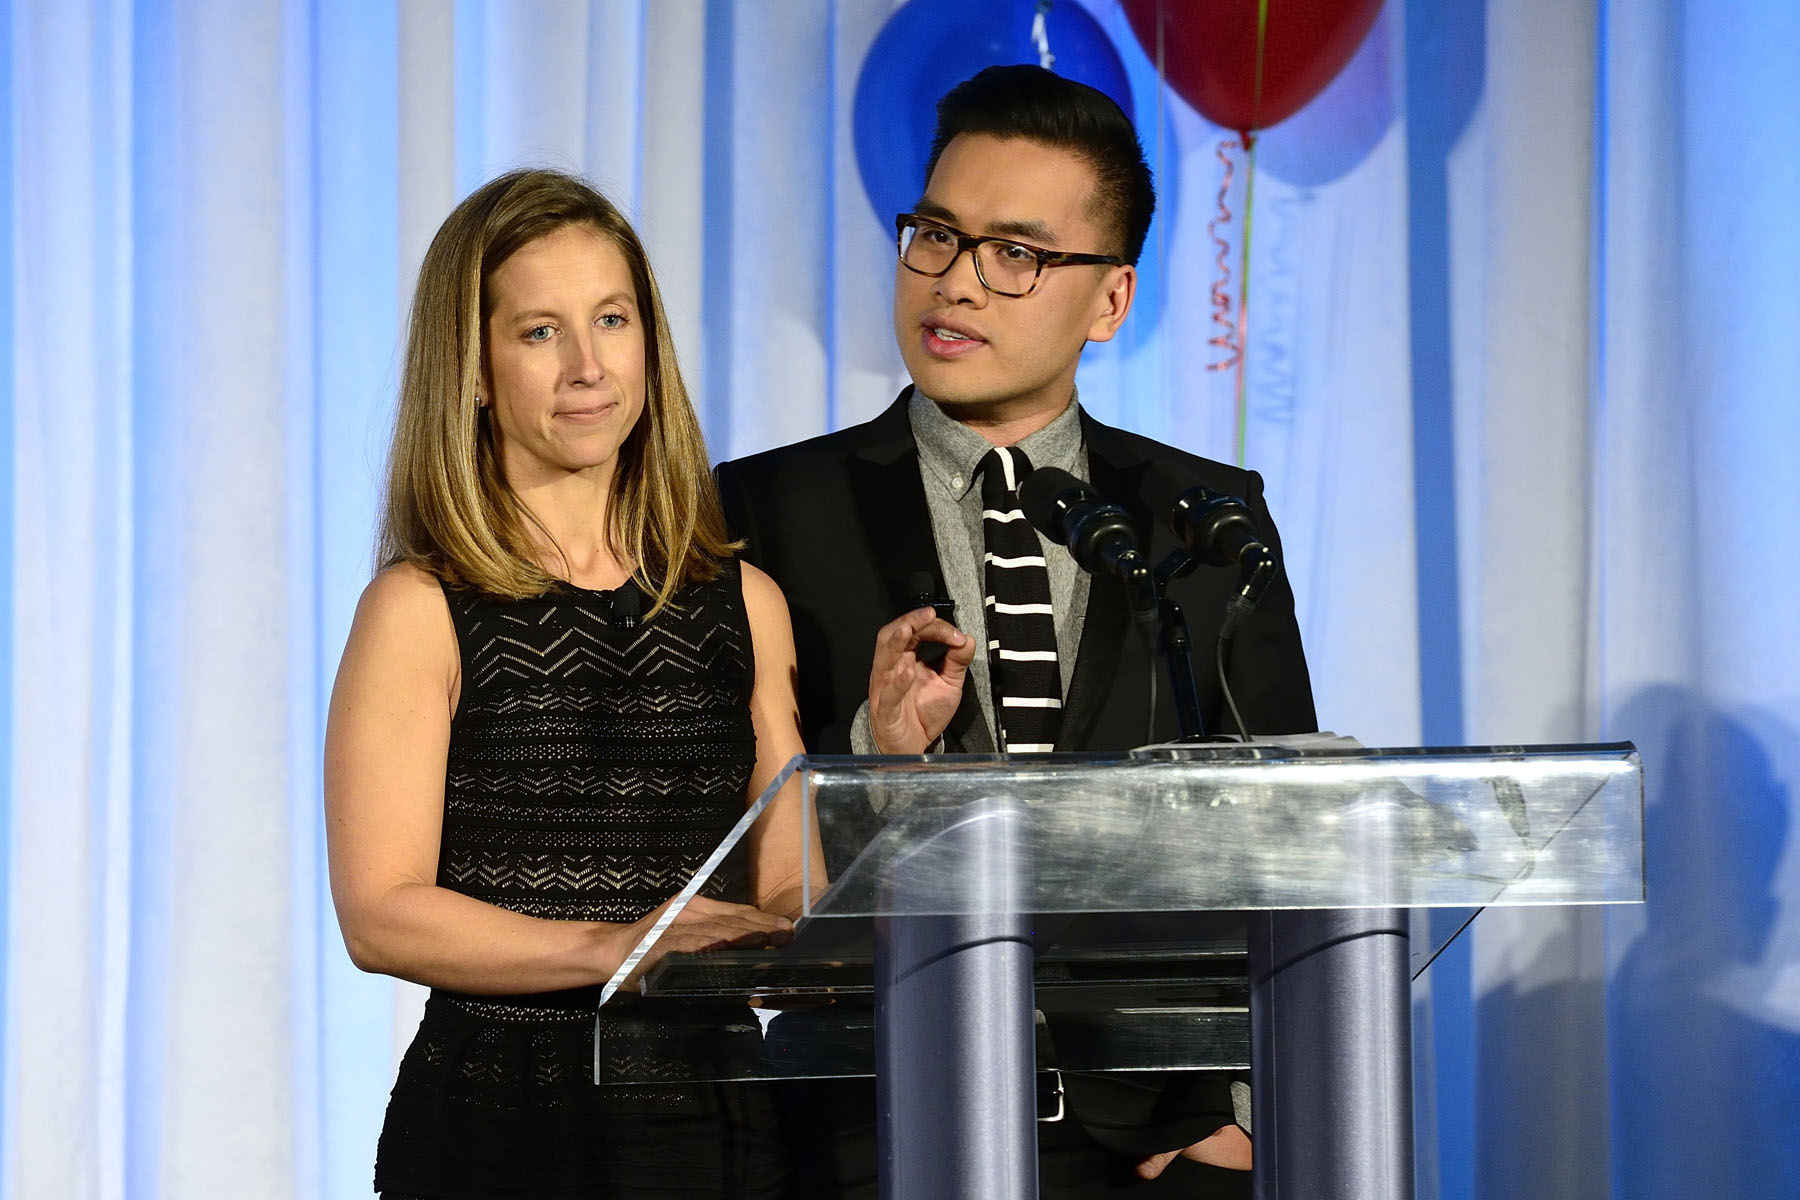 Mr. Liem Vu from Global Toronto's morning show and Ms. Josie French from Hot 89.9's radio morning show were the masters of ceremony for the gala.